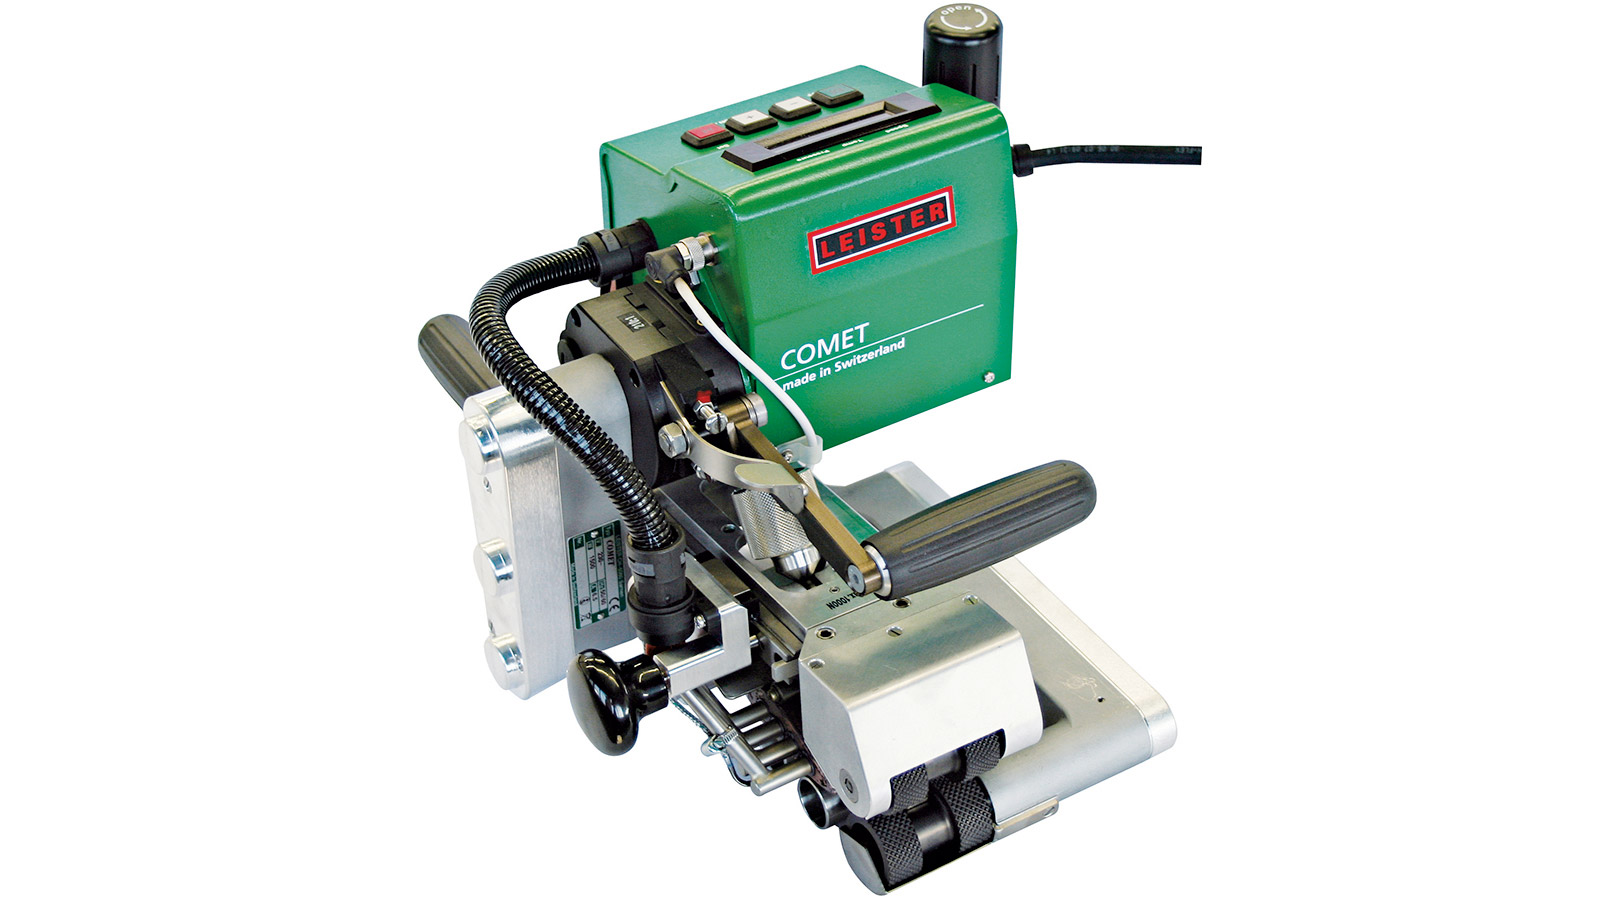 COMET USB Hot-wedge welder